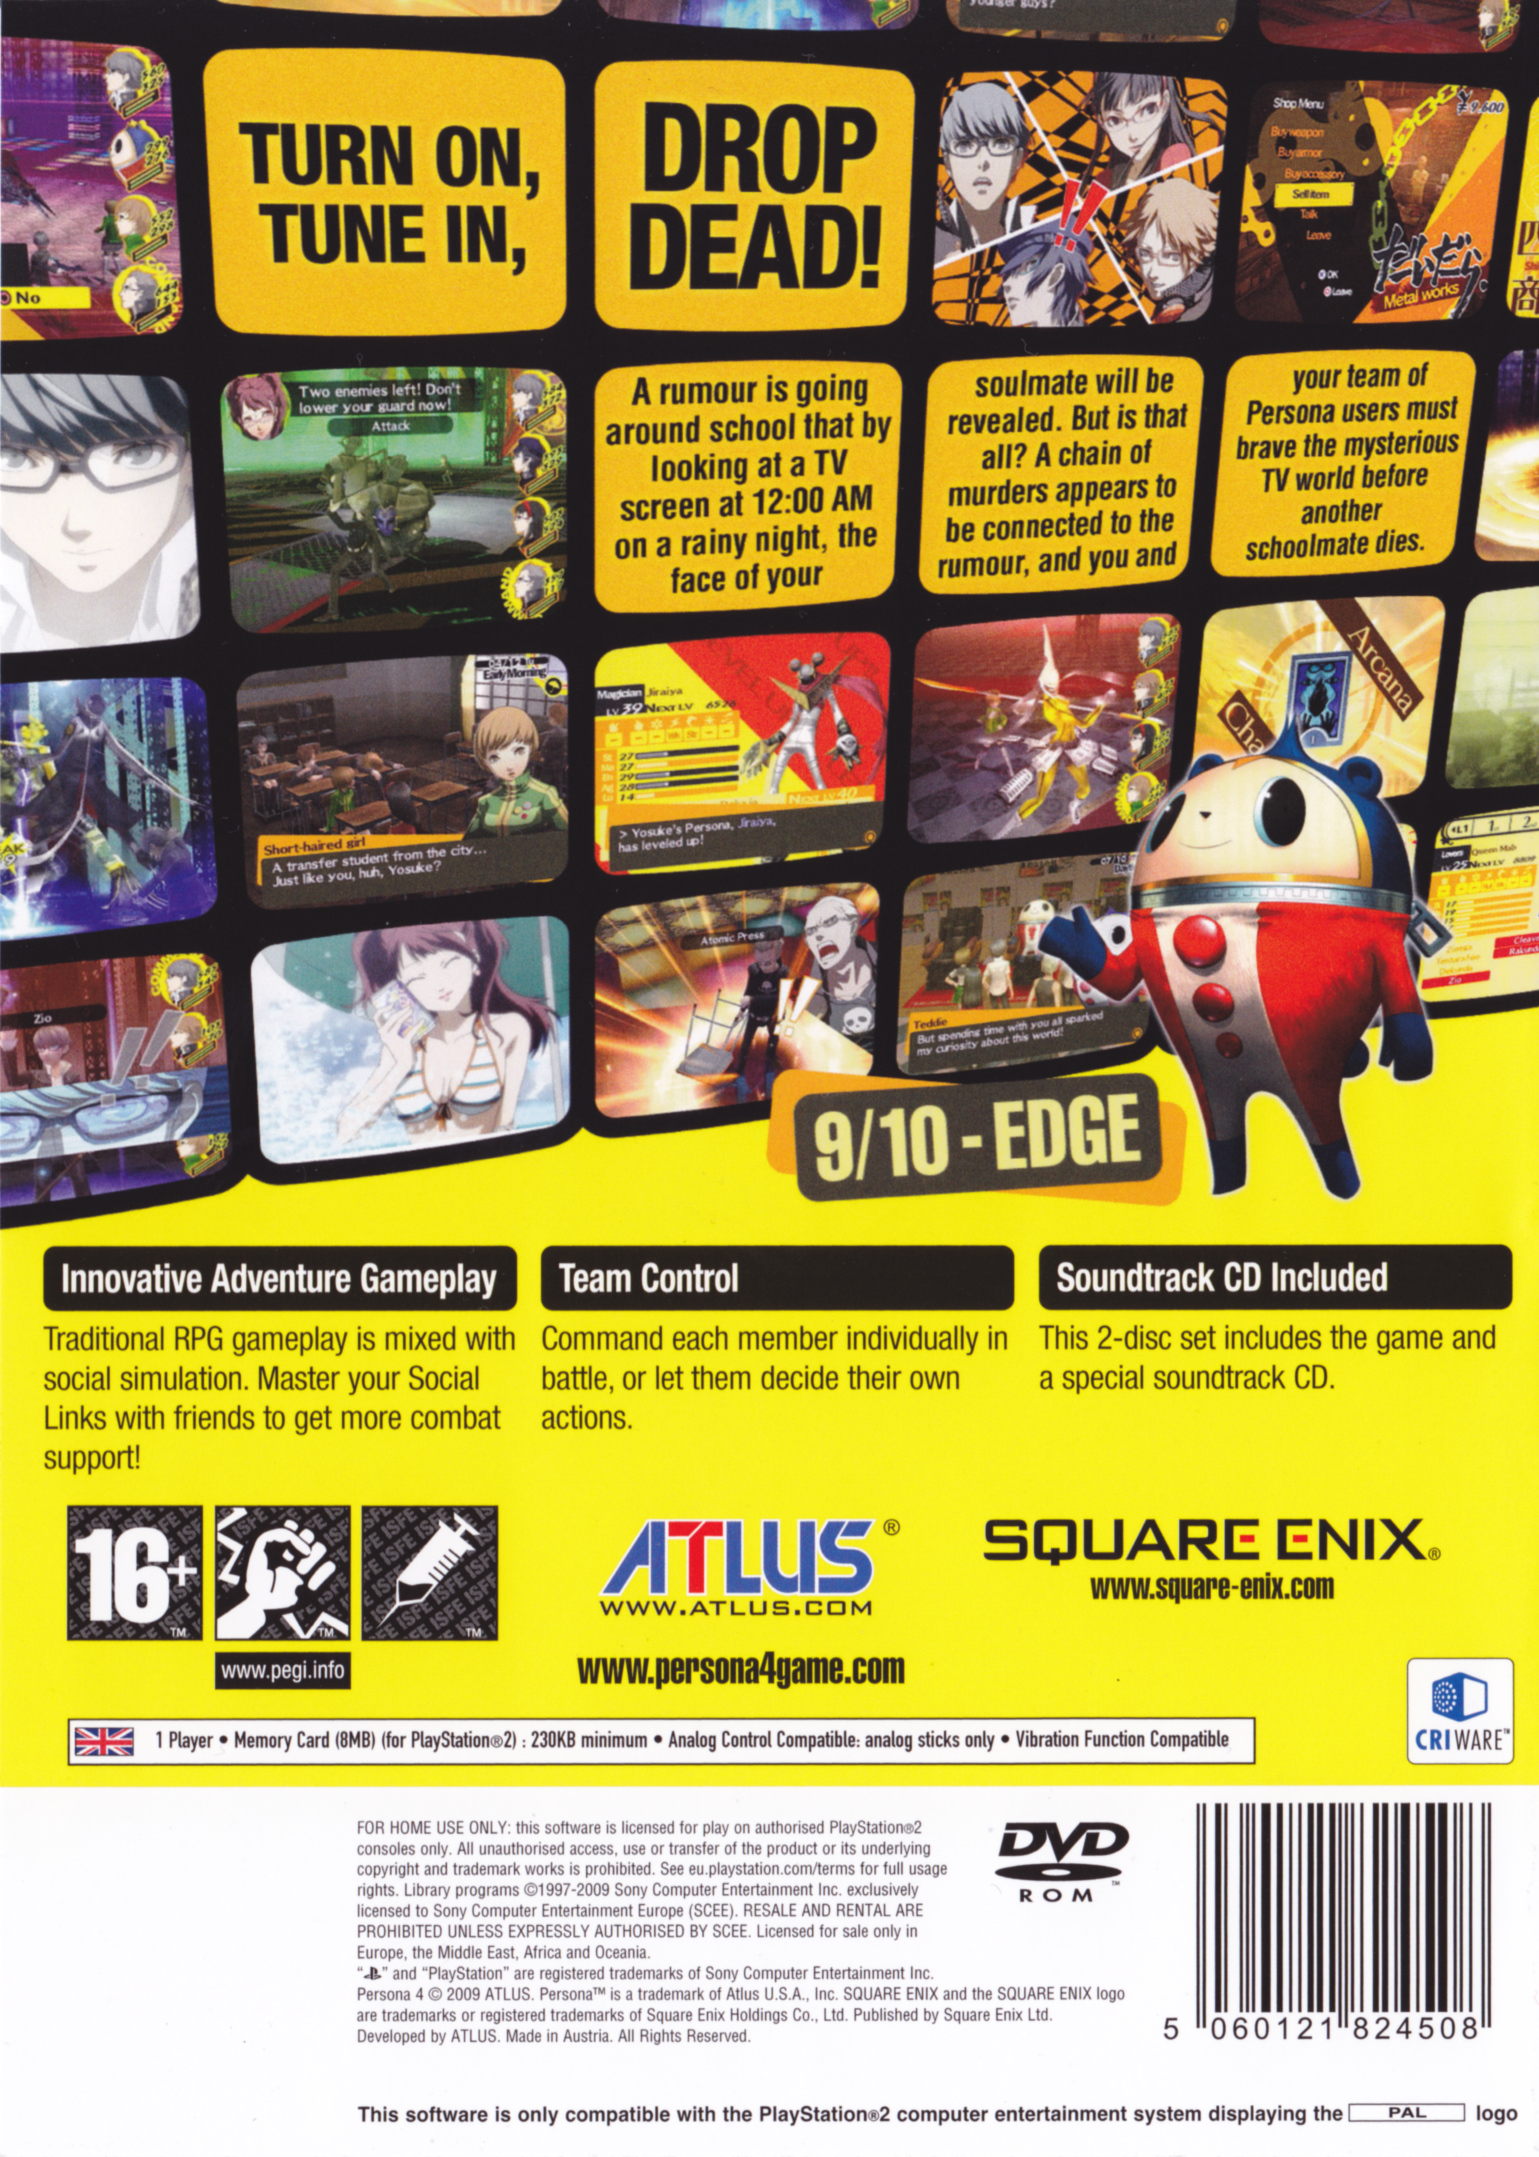 Persona 4 PAL back cover